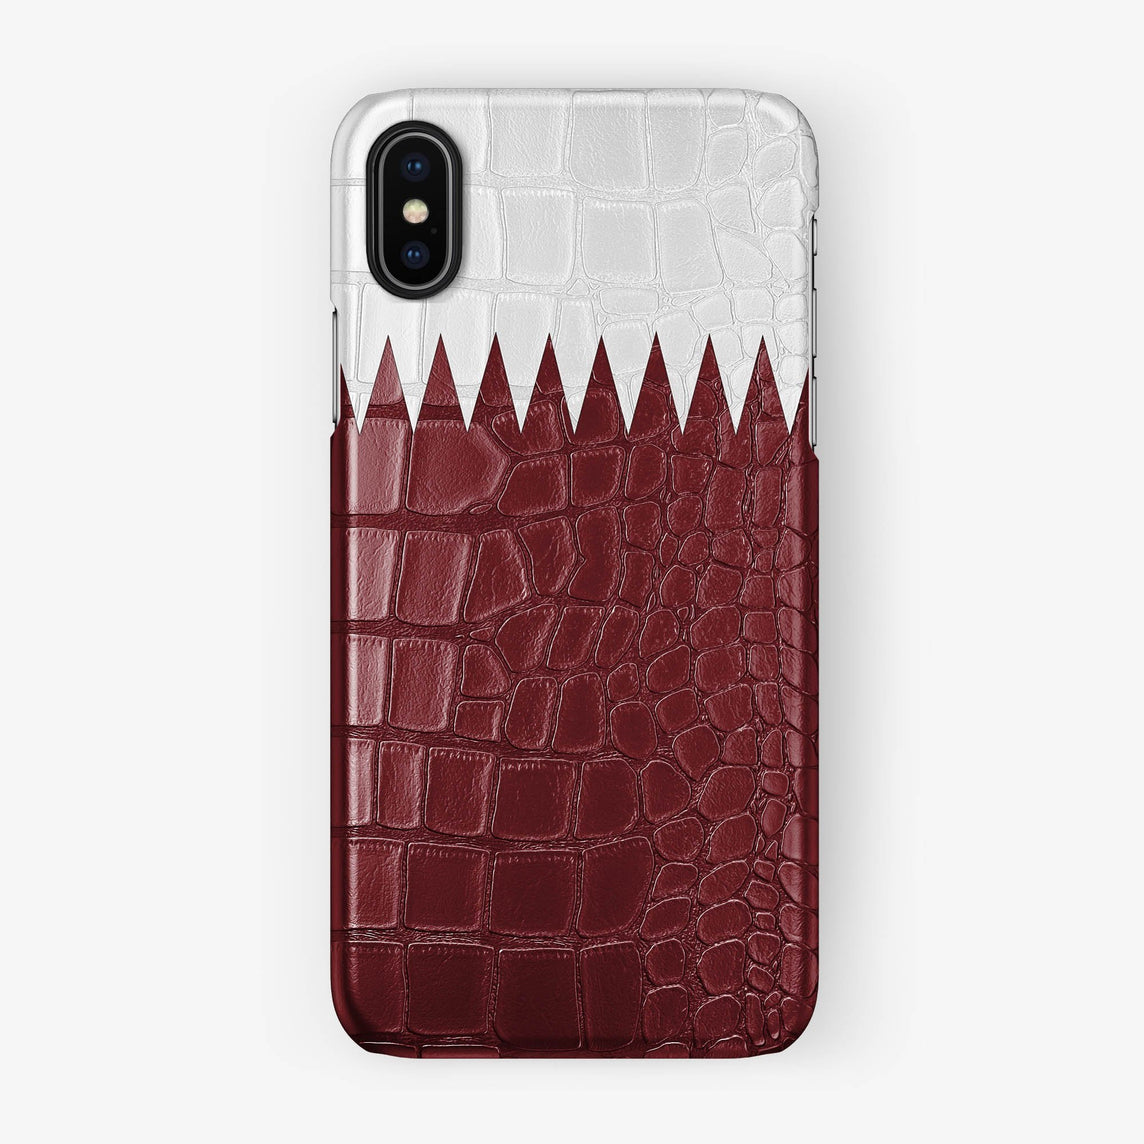 Alligator [iPhone Case Flag of Qatar] [model:iphone-xsmax-case] [finishing:black]